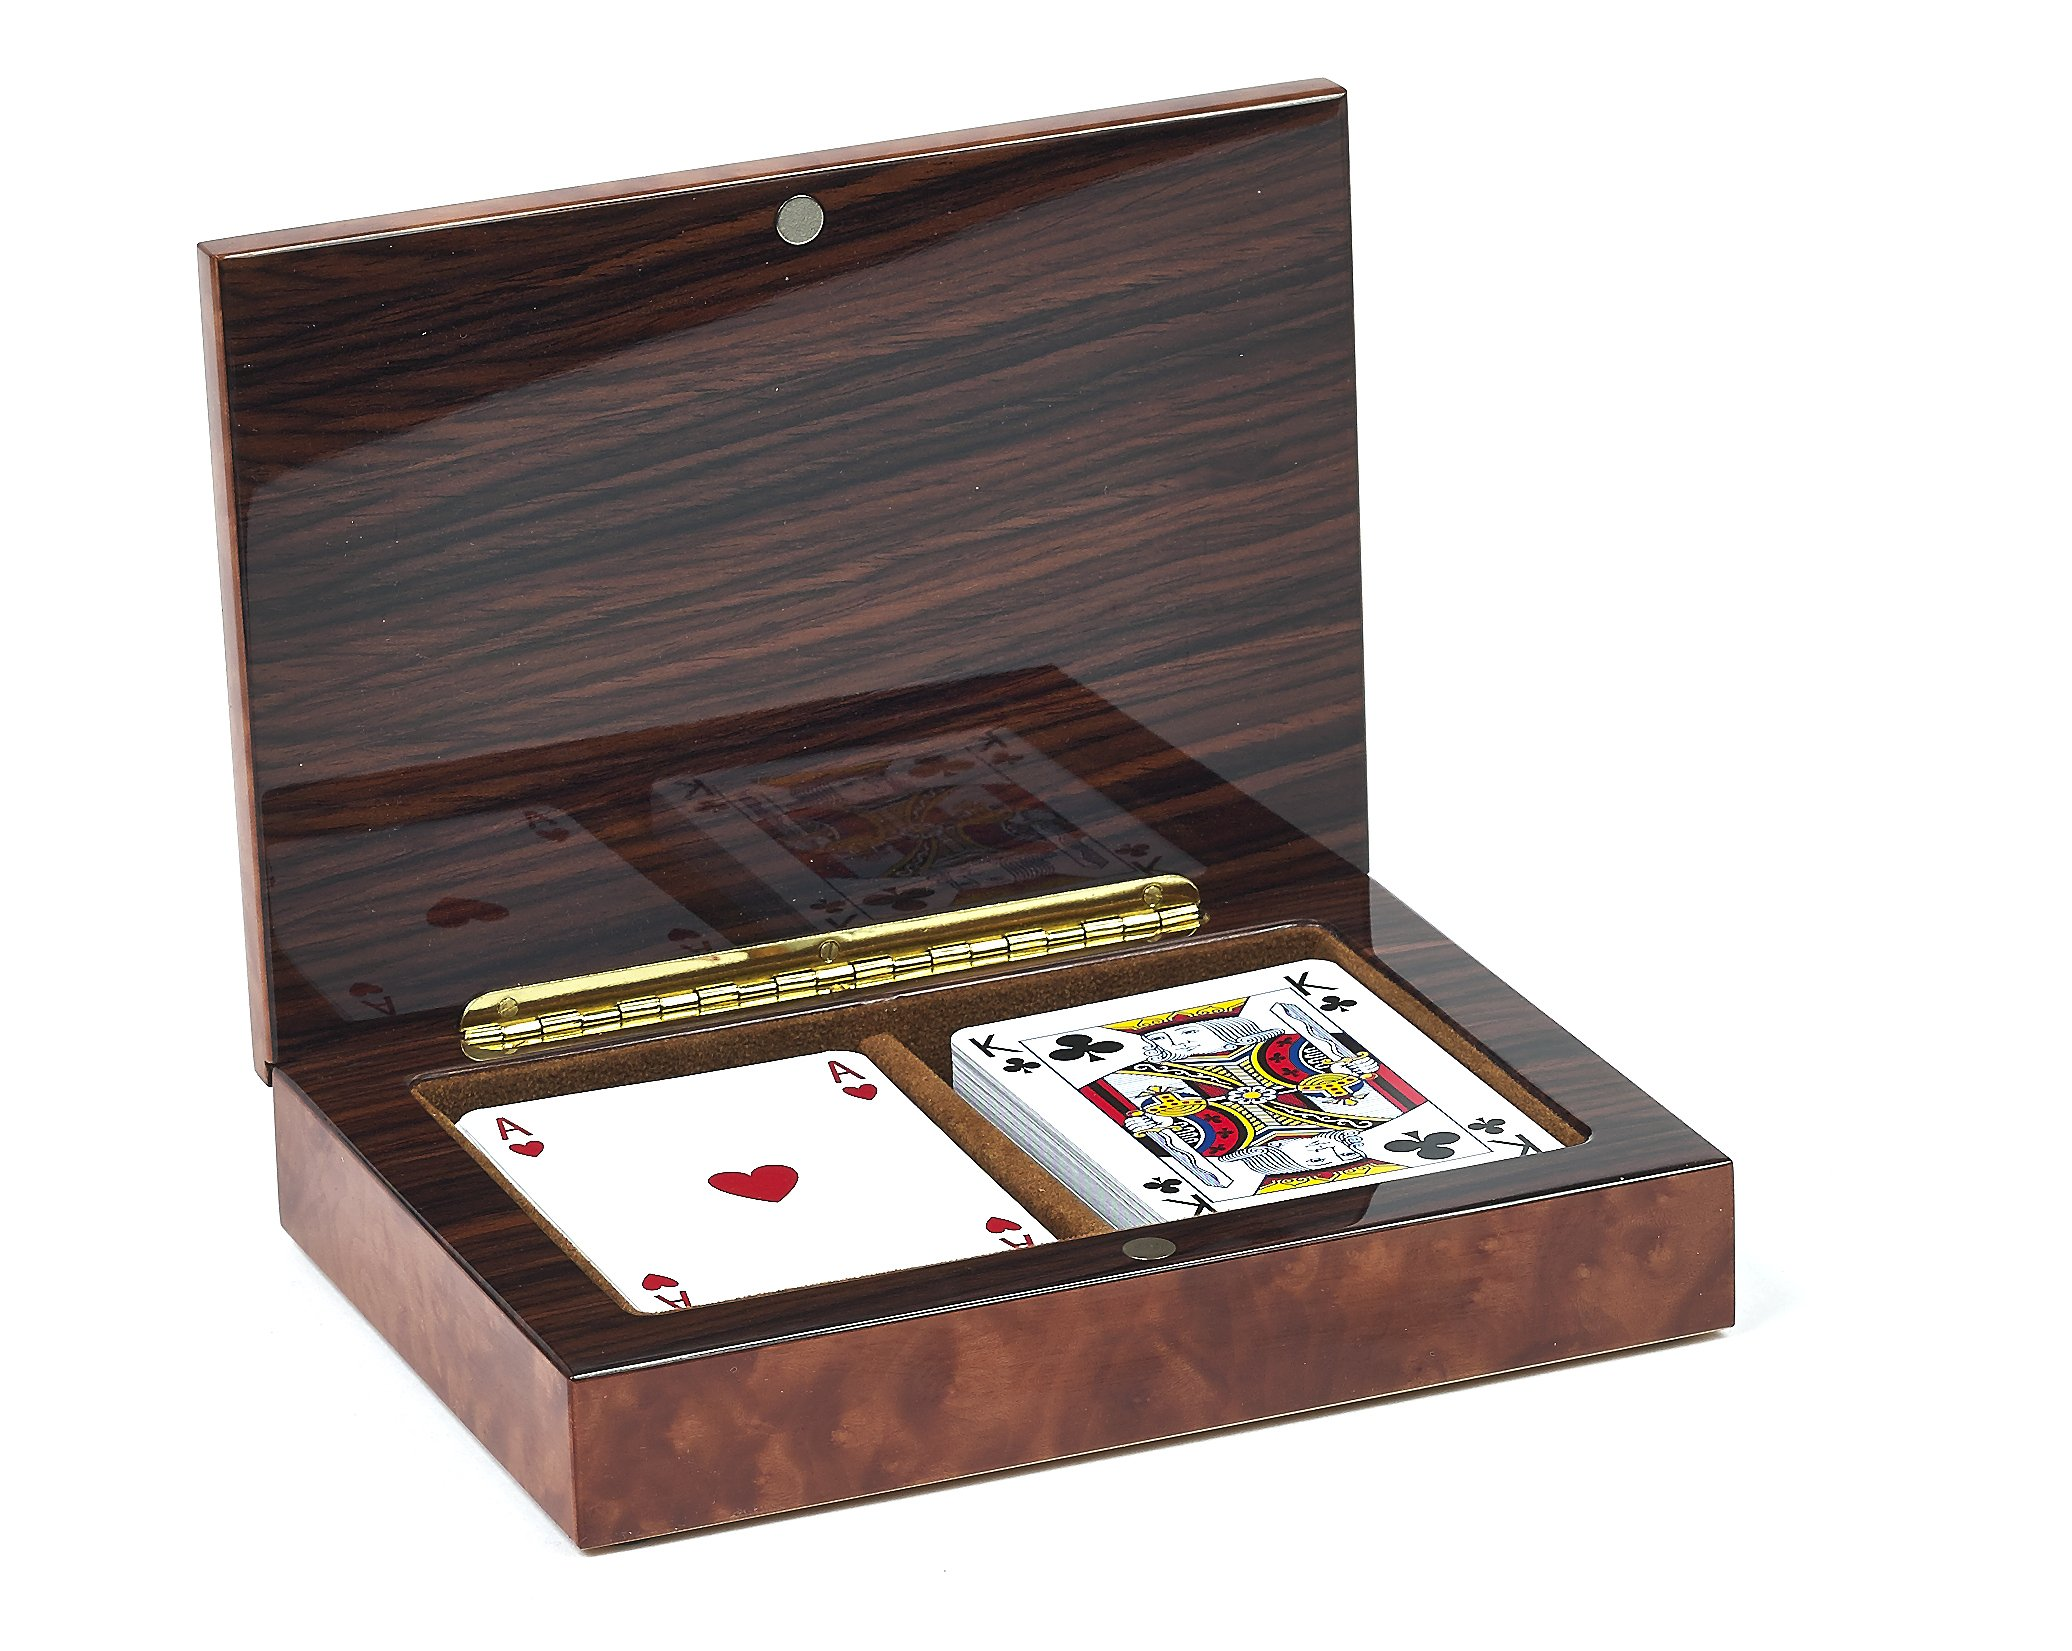 Bello Games Collezioni - Celestino Luxury Briarwood Playing Card Set from Italy by Bello Games New York, Inc.